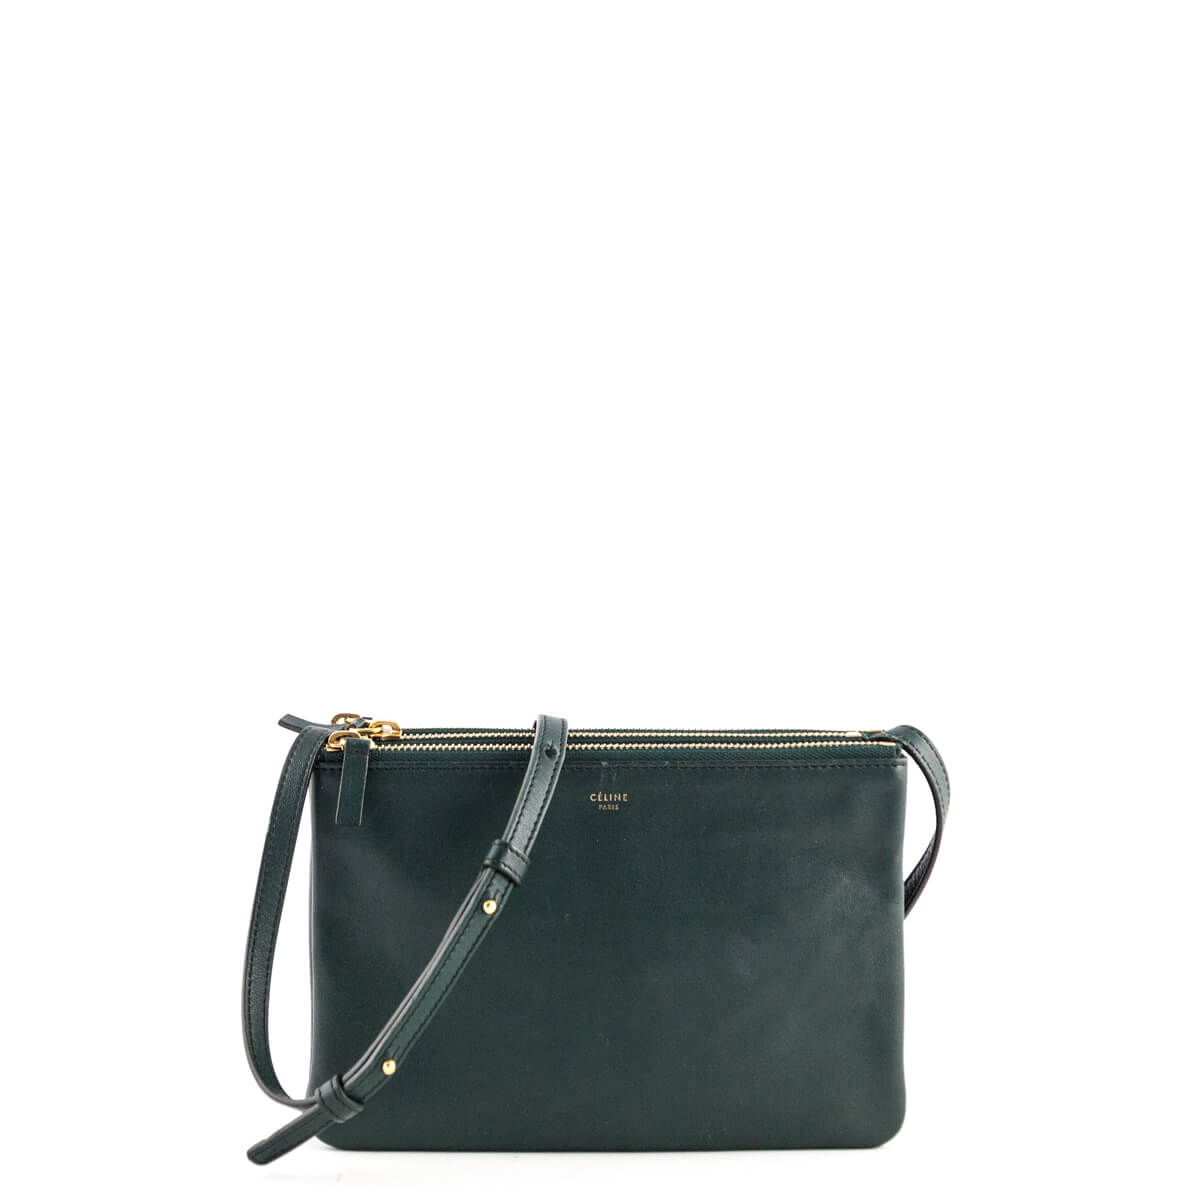 335579d520ab Celine Forest Green Lambskin Small Trio Crossbody - LOVE that BAG -  Preowned Authentic Designer Handbags ...